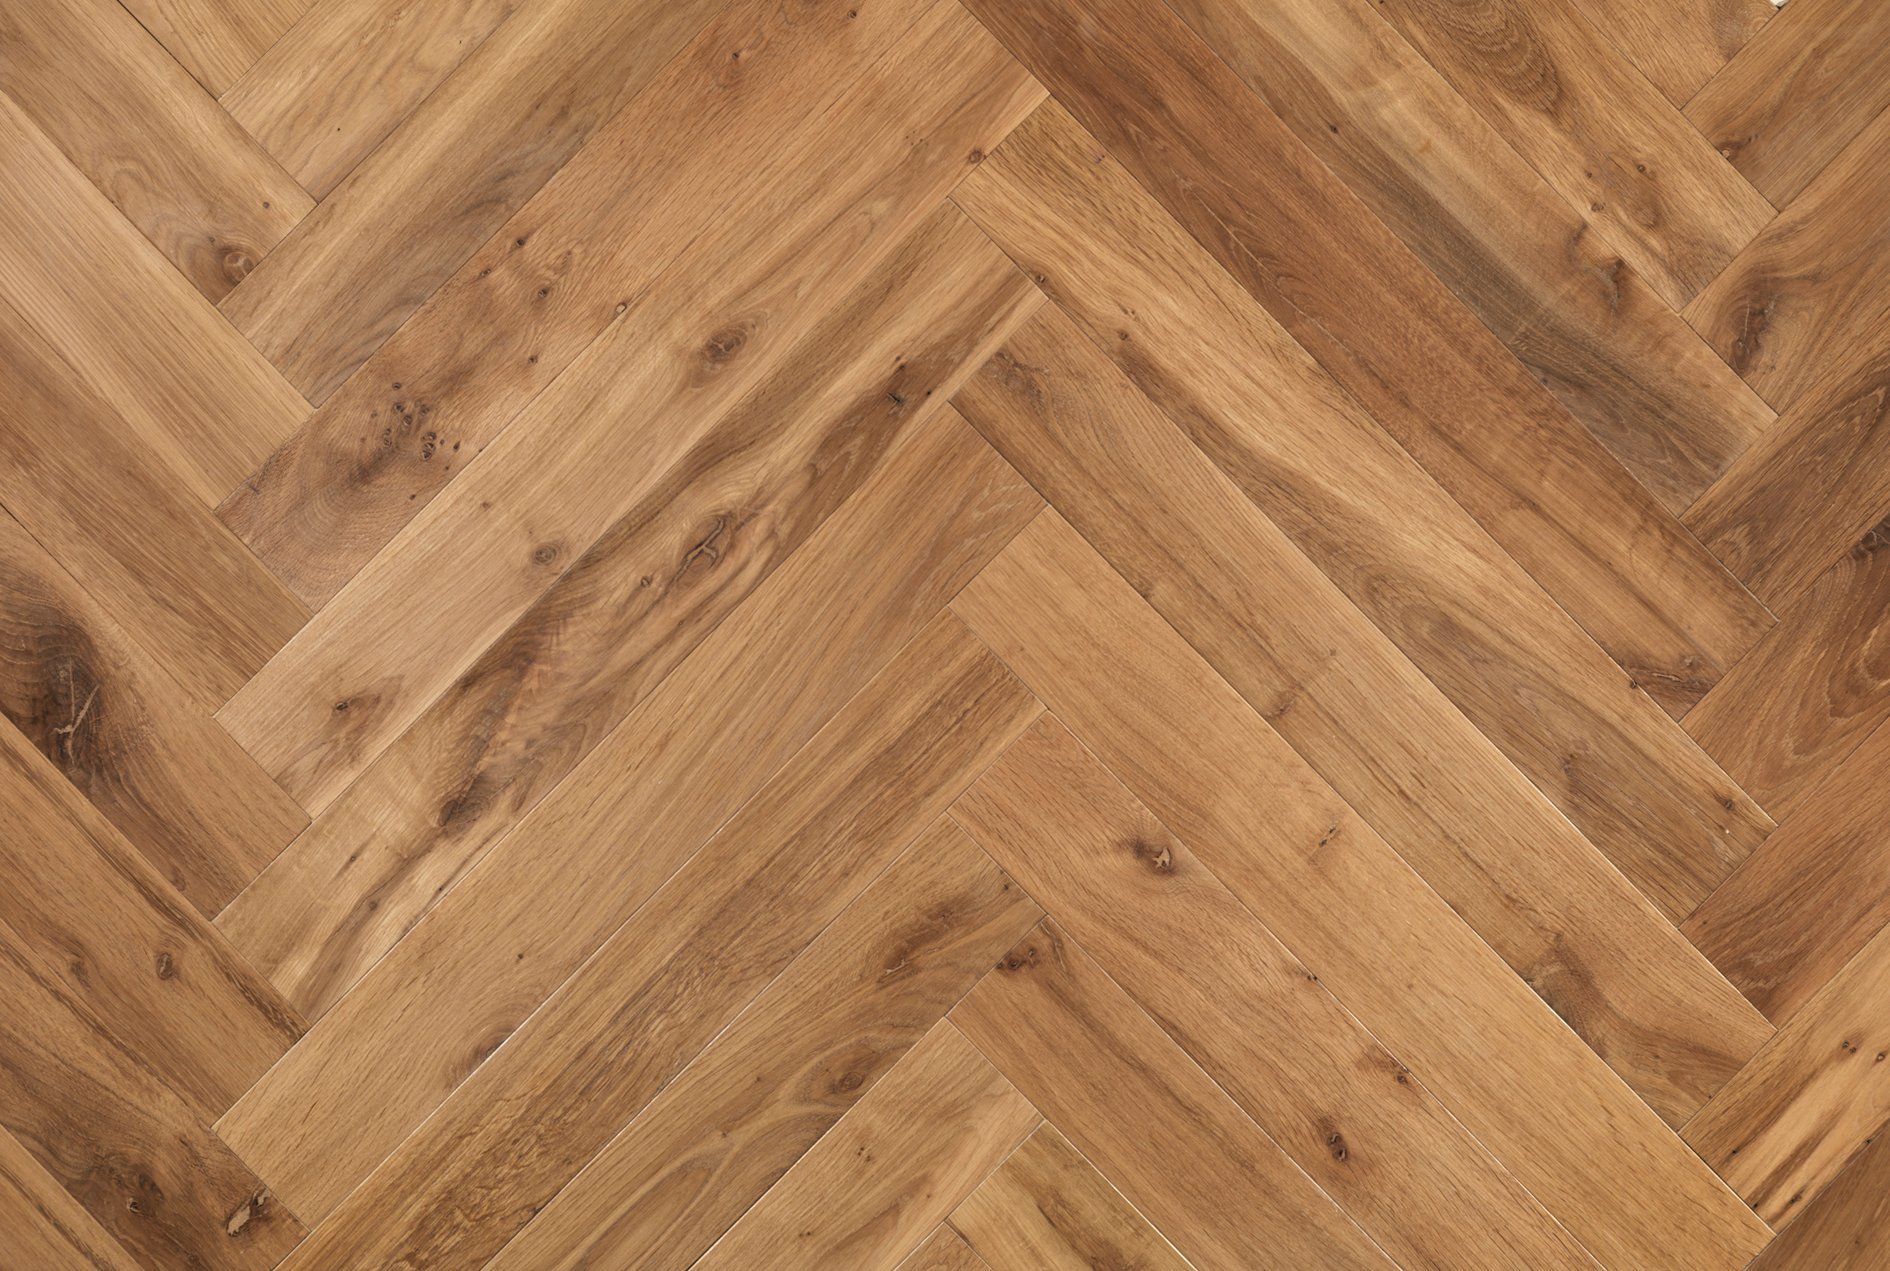 Reclaimed wood parquet old wood by devon devon - Parquet en bois ...